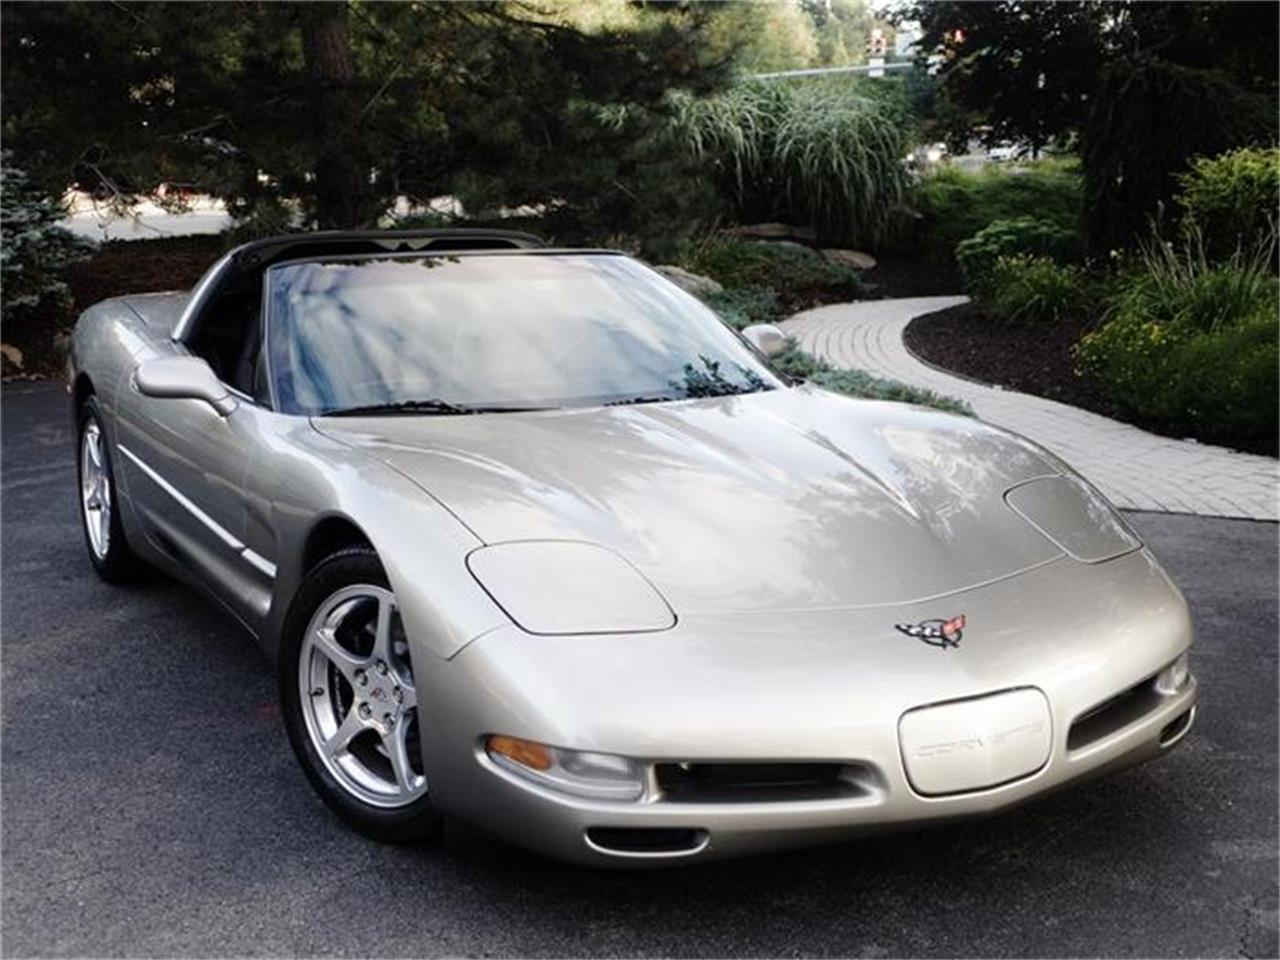 Large Picture of '99 Chevrolet Corvette - $17,900.00 Offered by Coffee's Sports and Classics - HB0J